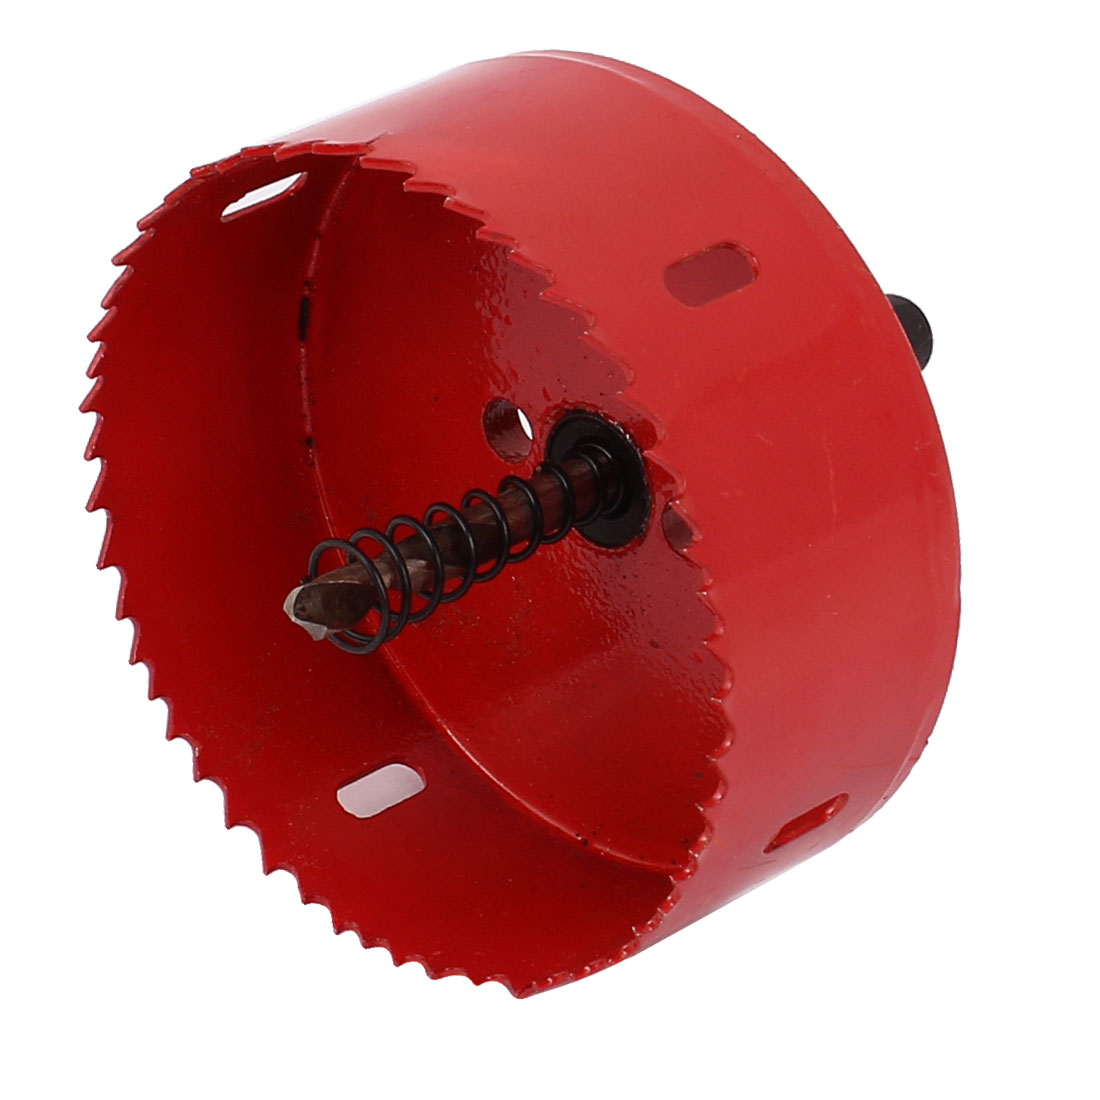 Подробнее о UXCELL 90Mm Cutting Dia Toothed Bi Metal Hole Saw Cutter Drill Bit Red For Wood Iron uxcell 16mm cut dia serrated metal hole saw cutter tool black